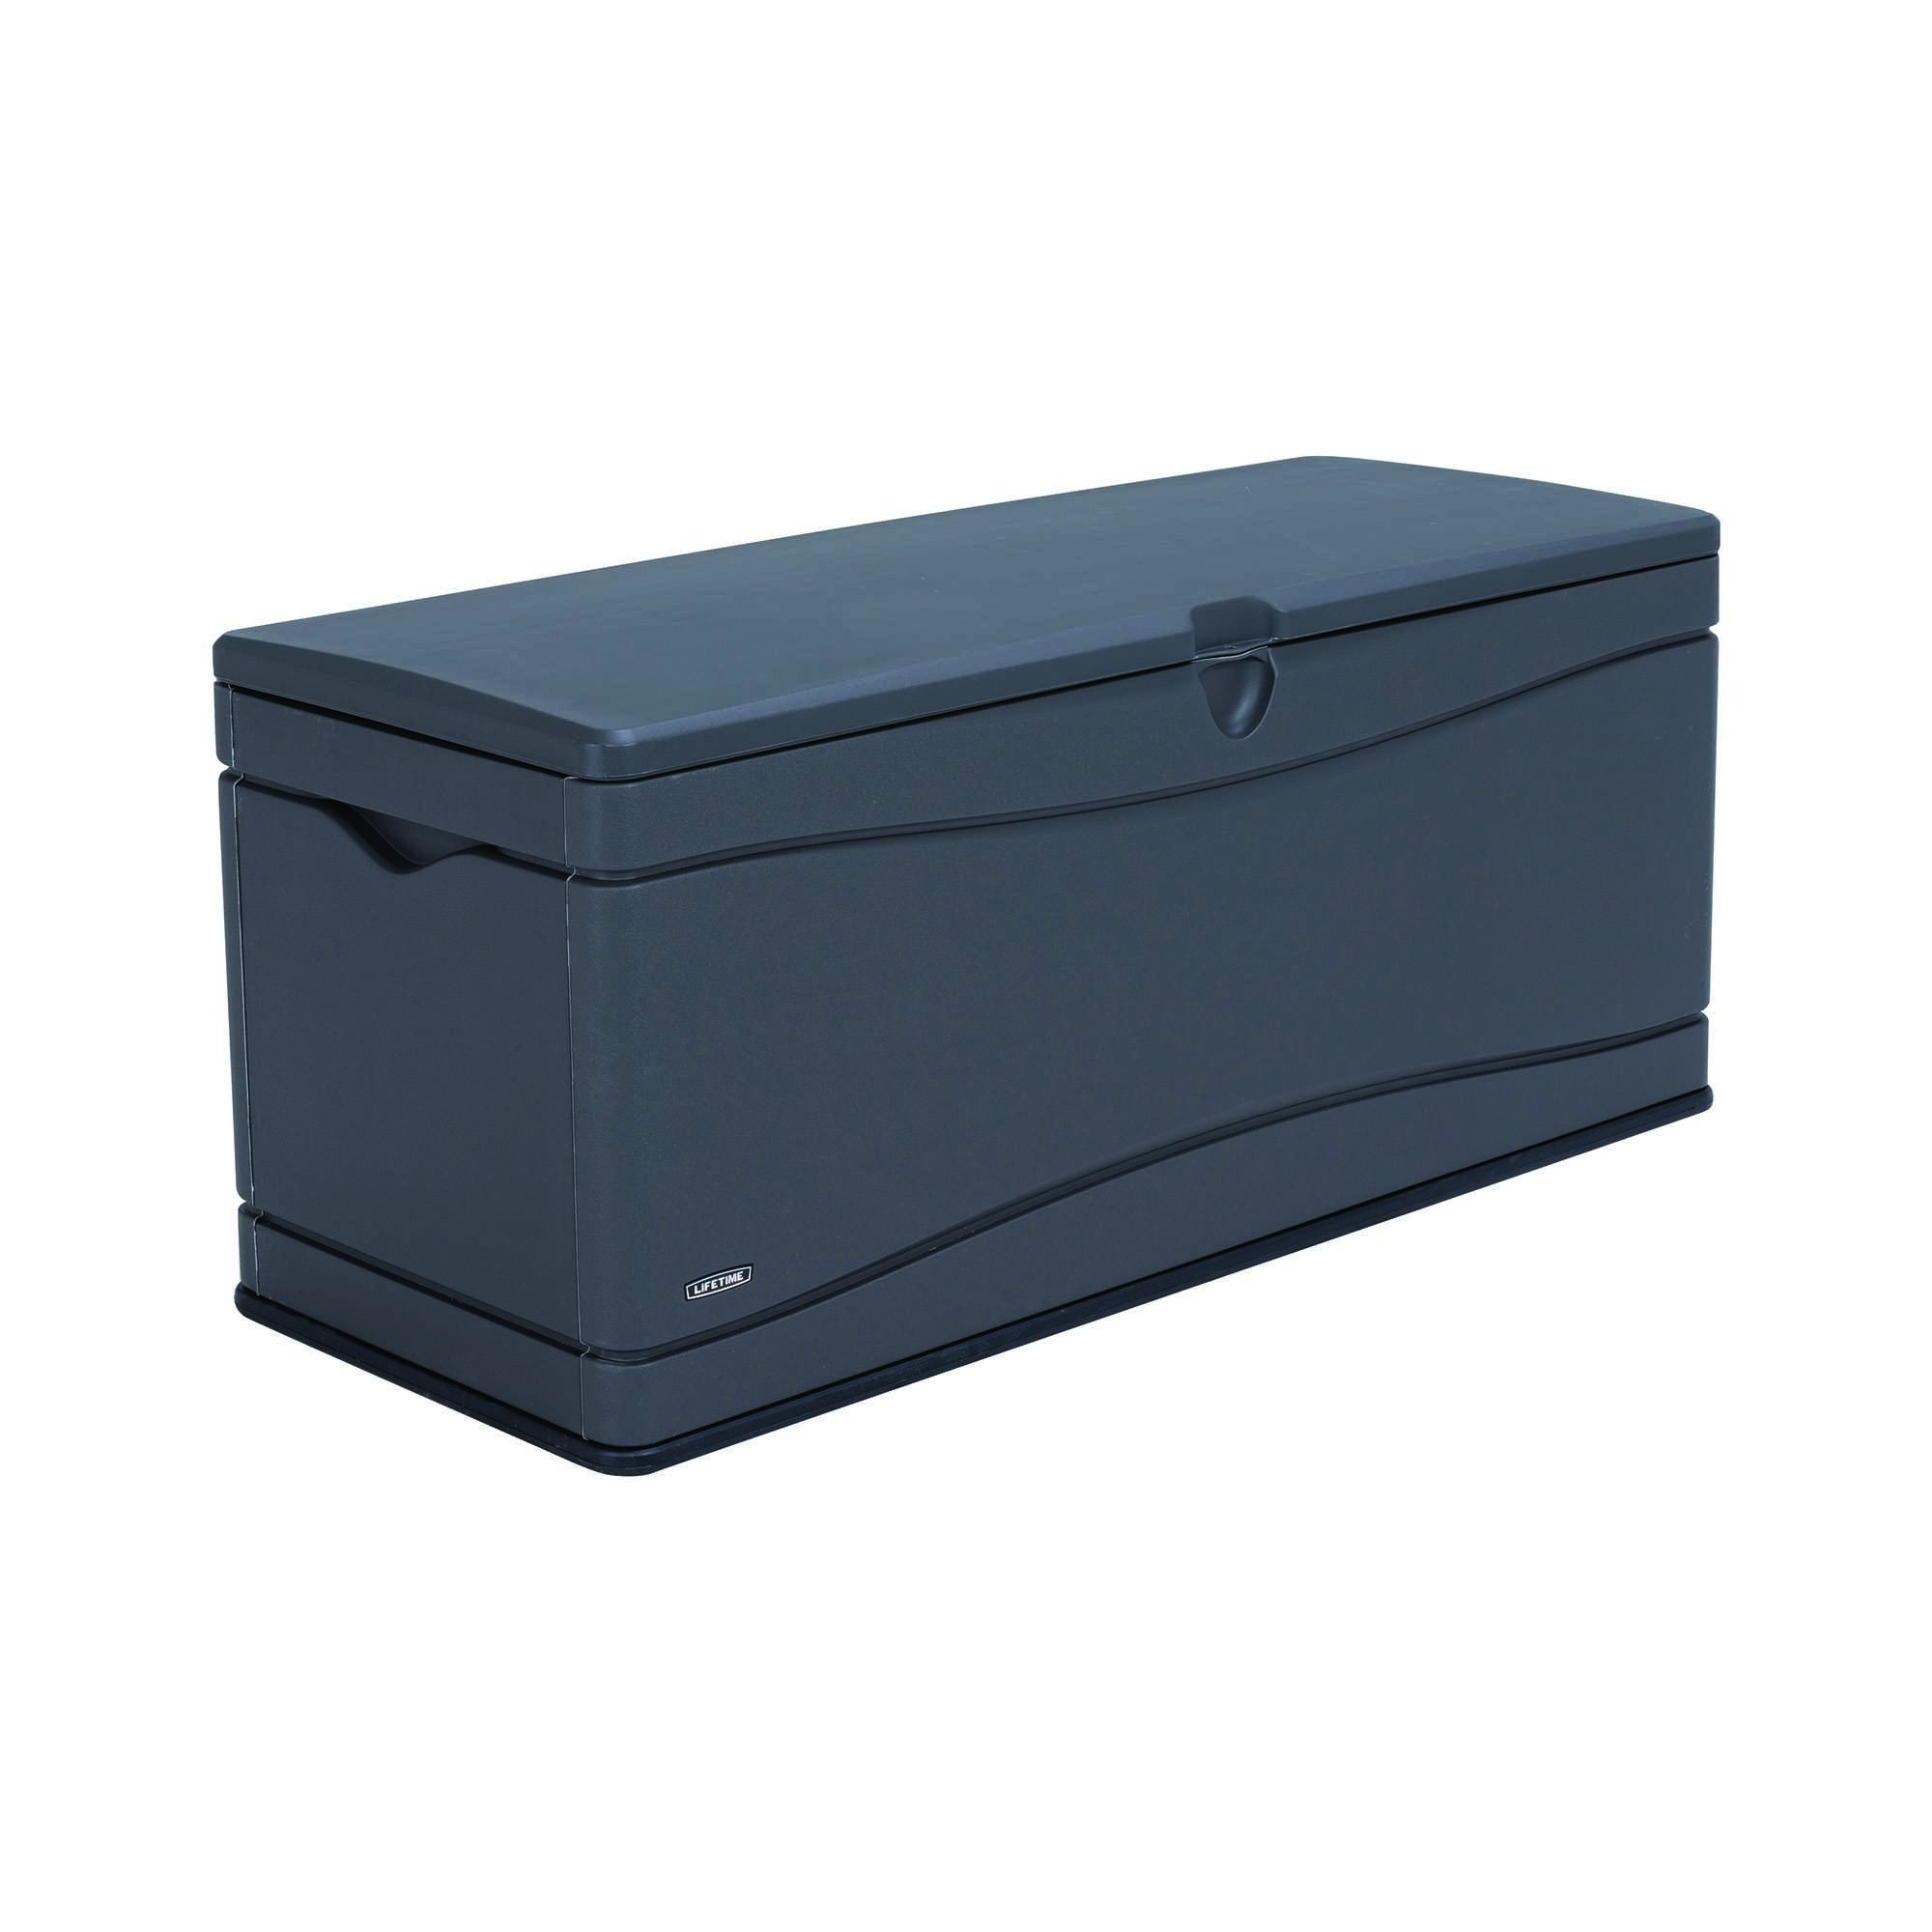 Lifetime 500 Litre Plastic Outdoor Storage Box  - Dark Grey